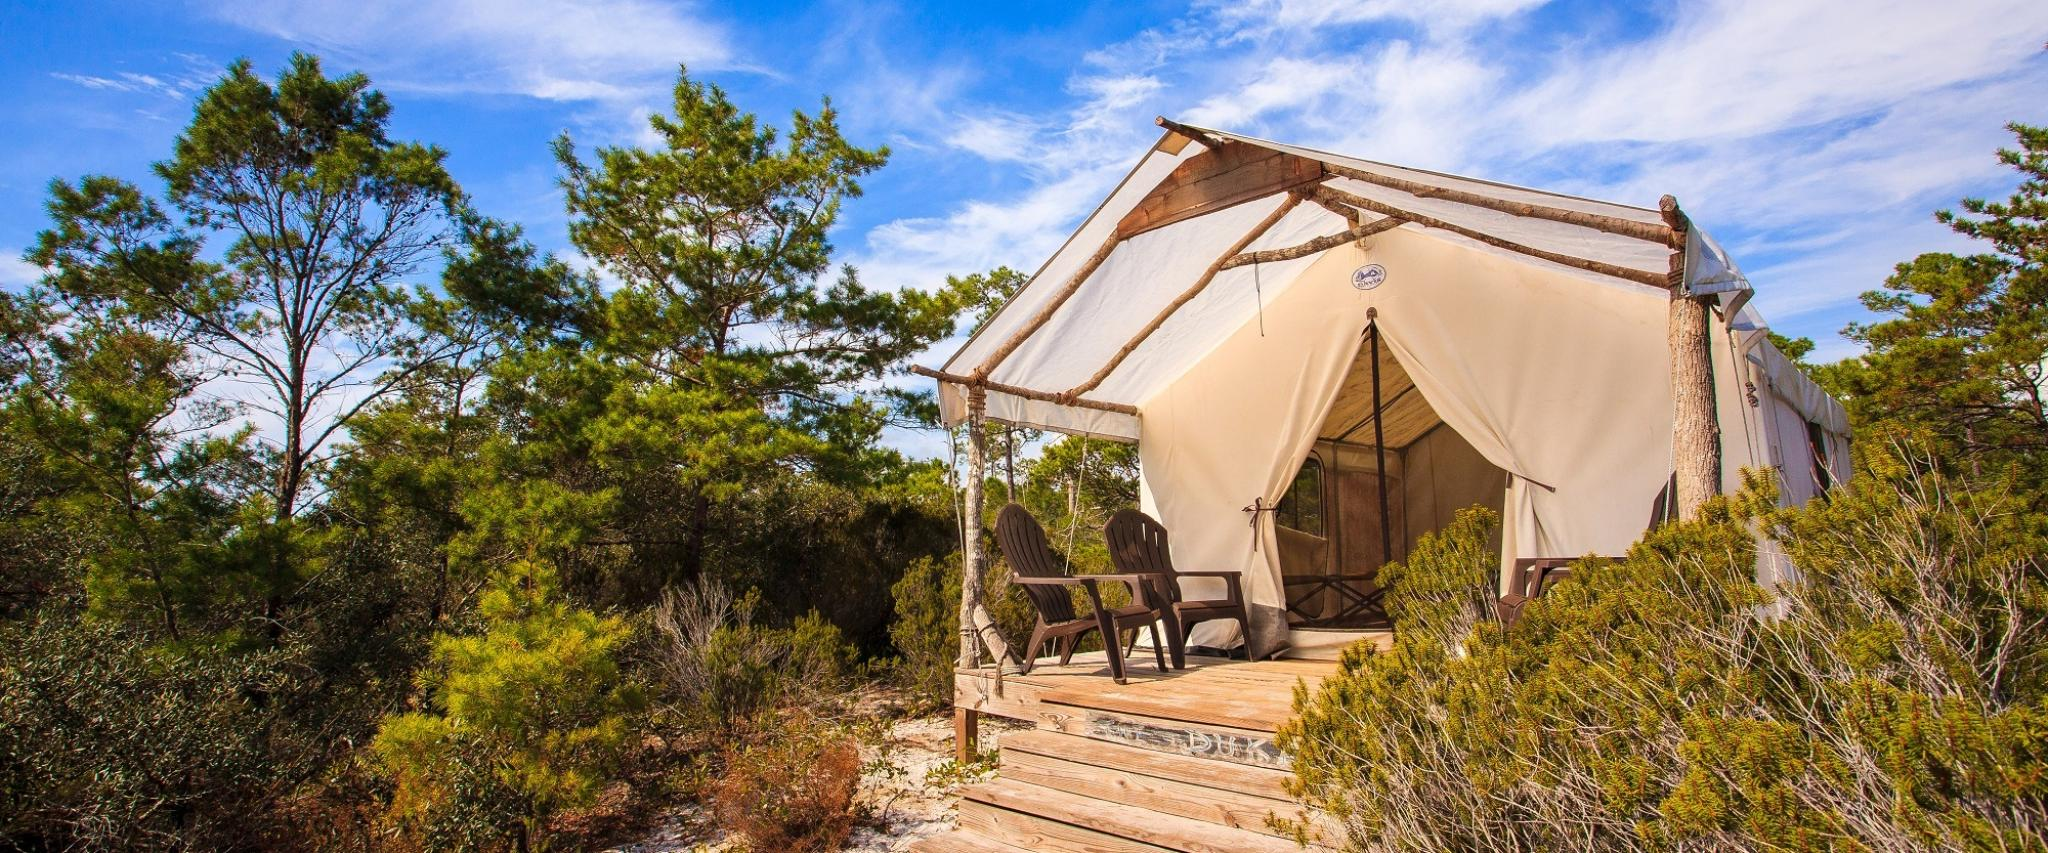 Top 10+ RV Parks & Campgrounds in Gulf Shores & Orange Beach (2019)